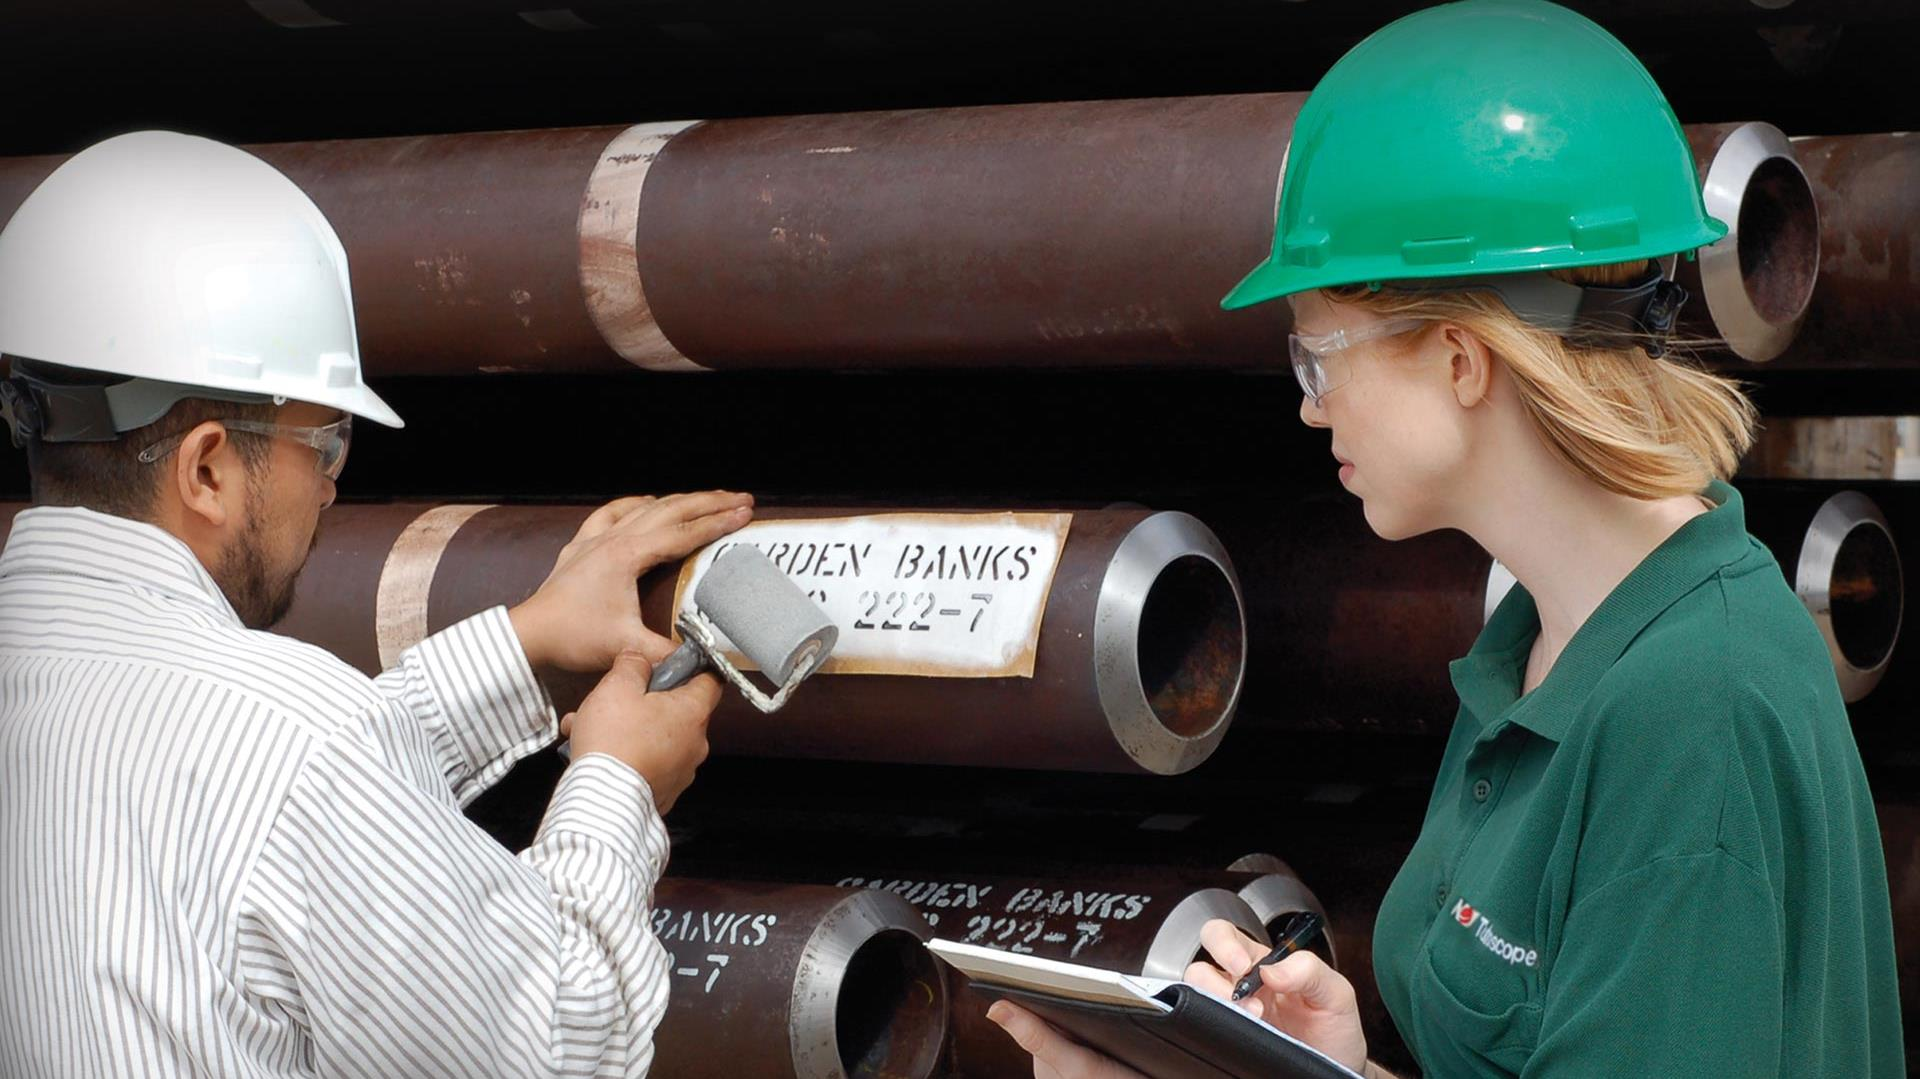 Image of a man and a woman performing pipe inspection.